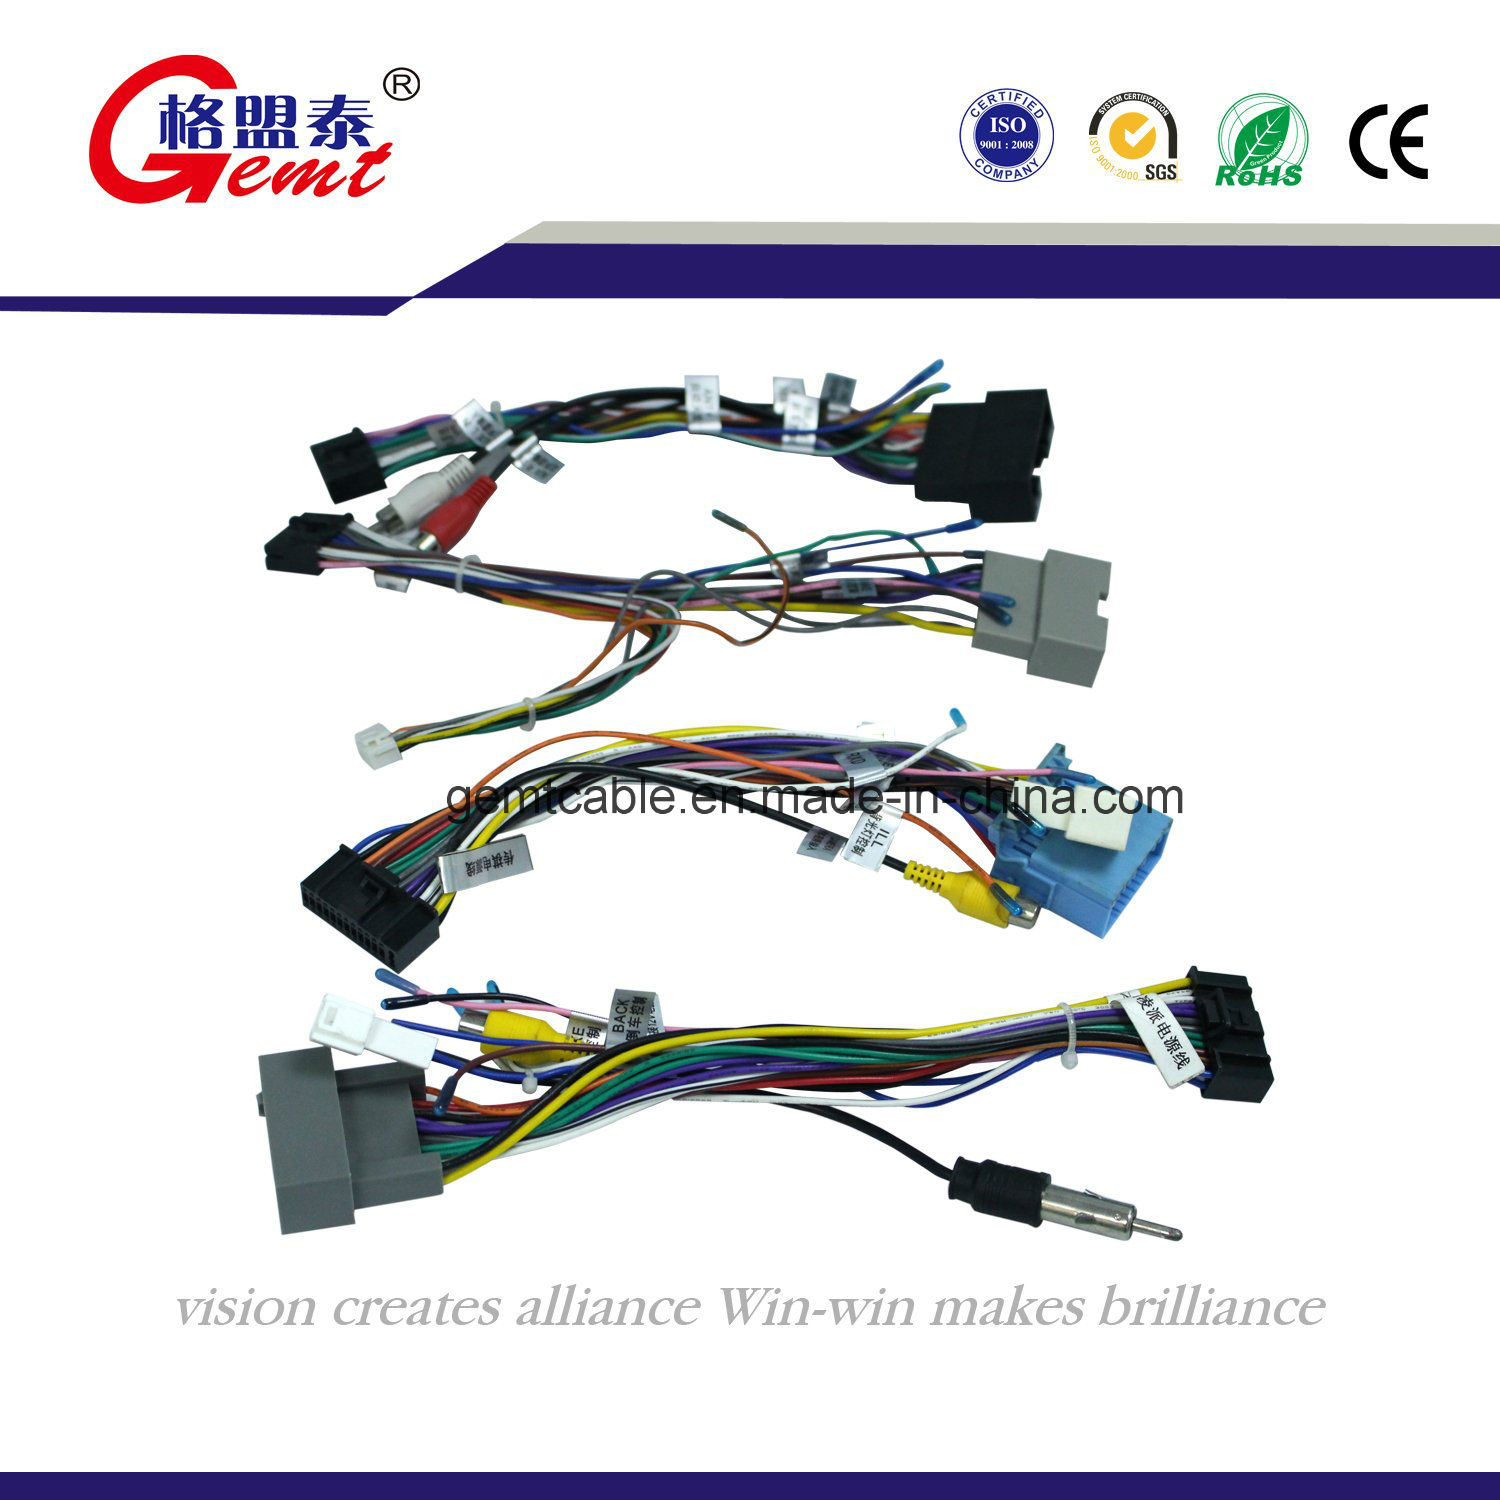 Wiring Harness Manufacturer Psa Custom Diagram Company China Peugeot Citroen Extension Cord Photos Rh Gemtcable En Made In Com Engine Pakistan